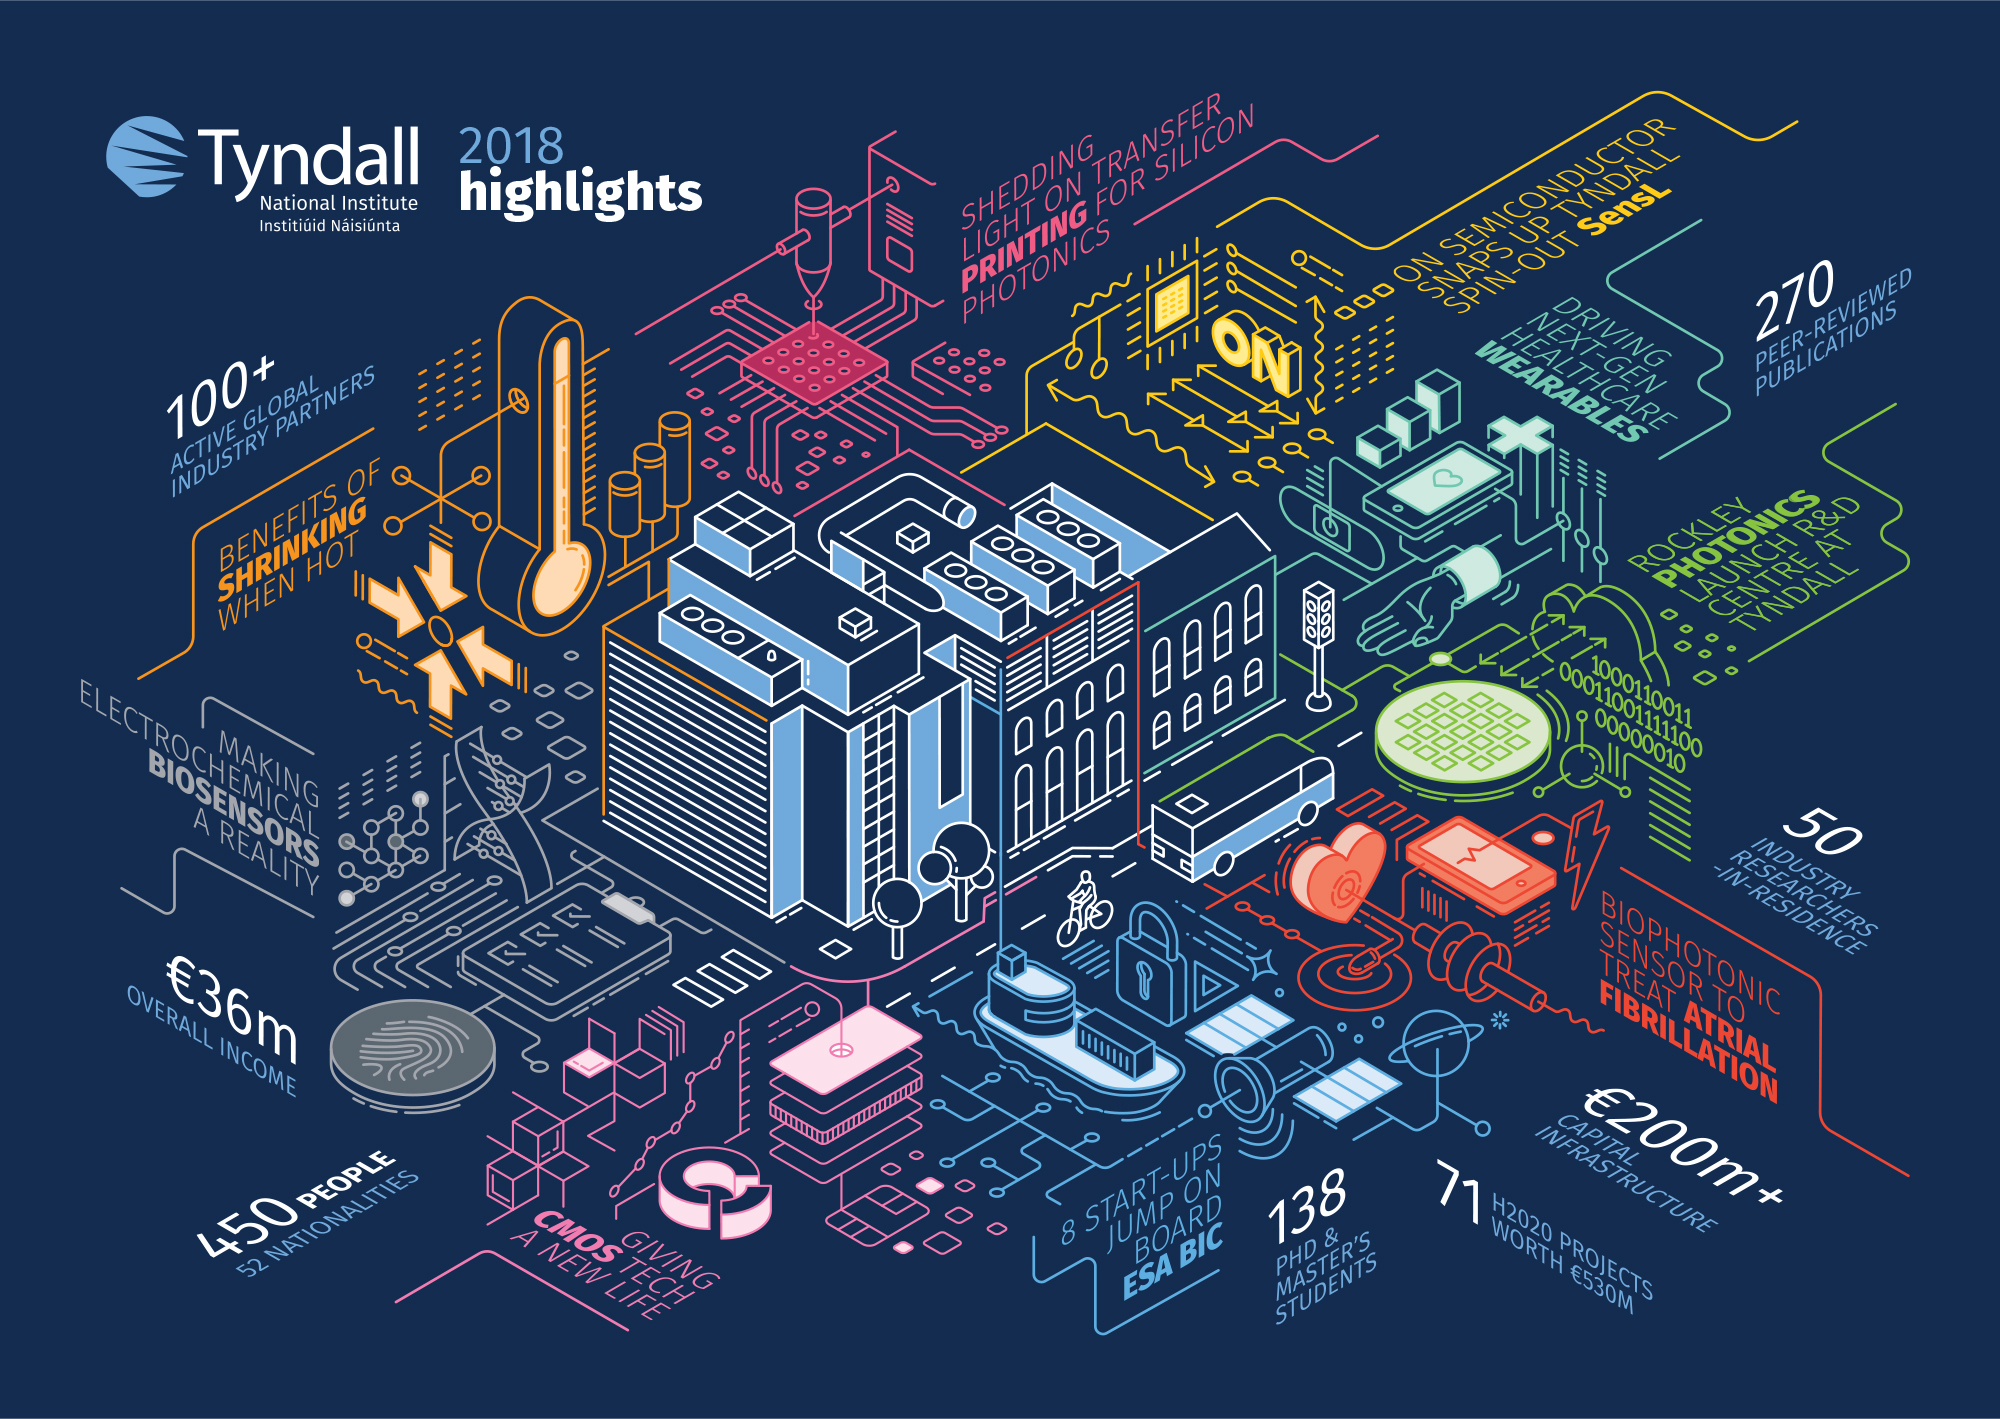 Isometric Infographic design -  Tyndall National Institute